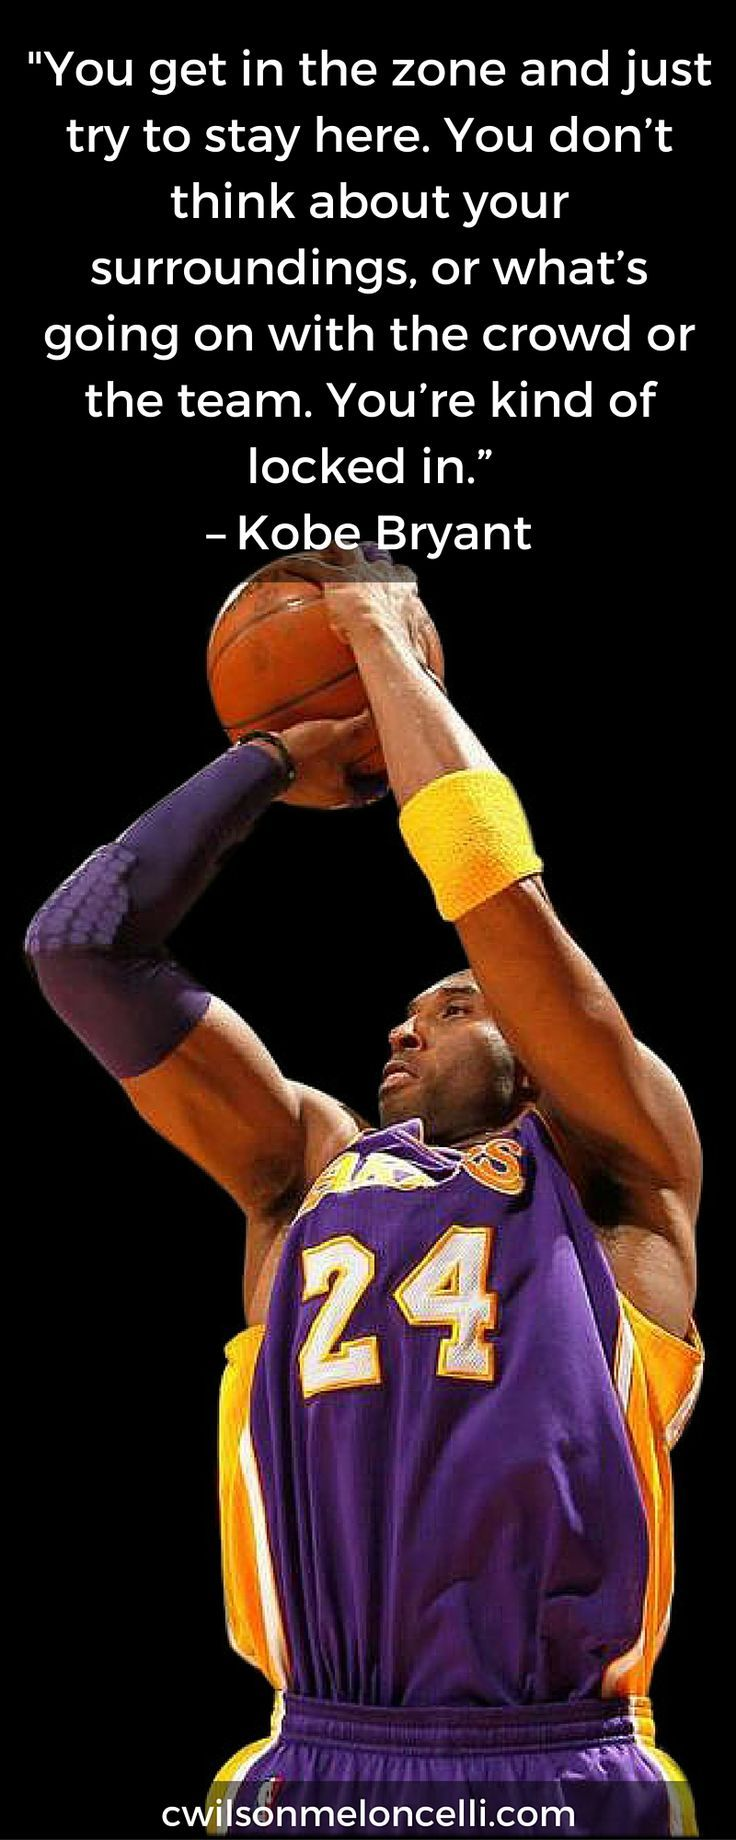 Motivational Quotes For Basketball Players: 25+ Best Kobe Bryant Quotes On Pinterest